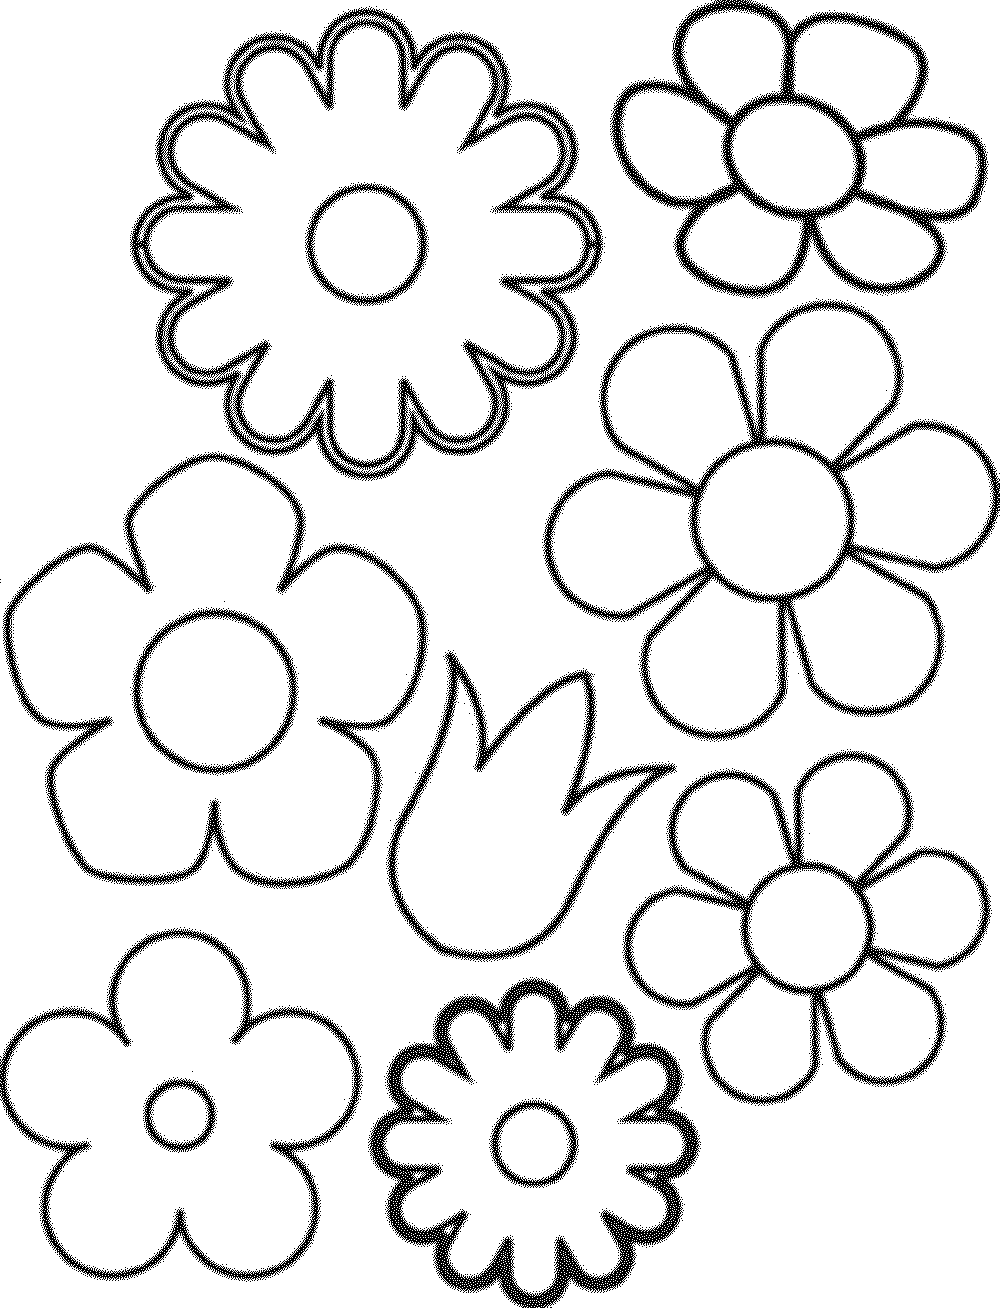 Uncategorized Easy Flower Coloring Pages easy flower coloring pages murderthestout print some common variations of the pages